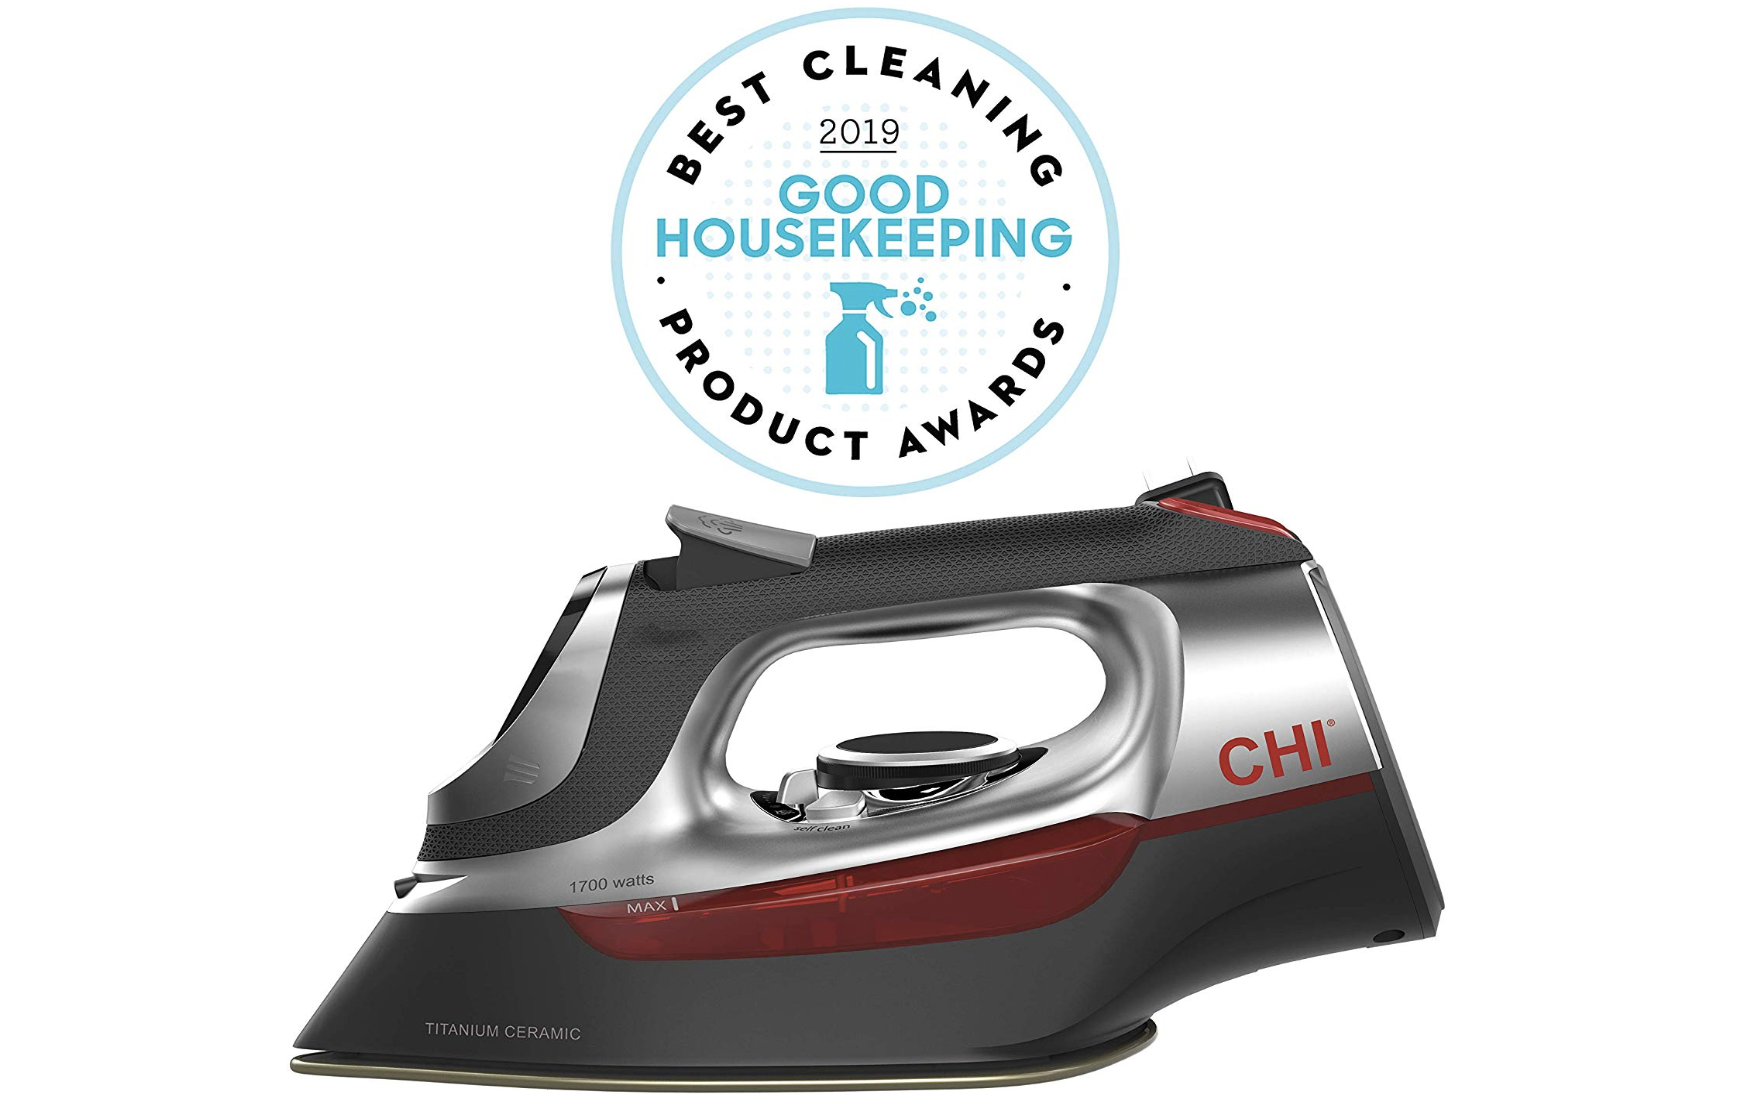 Top 10 Best Steam Irons of 2020 Review